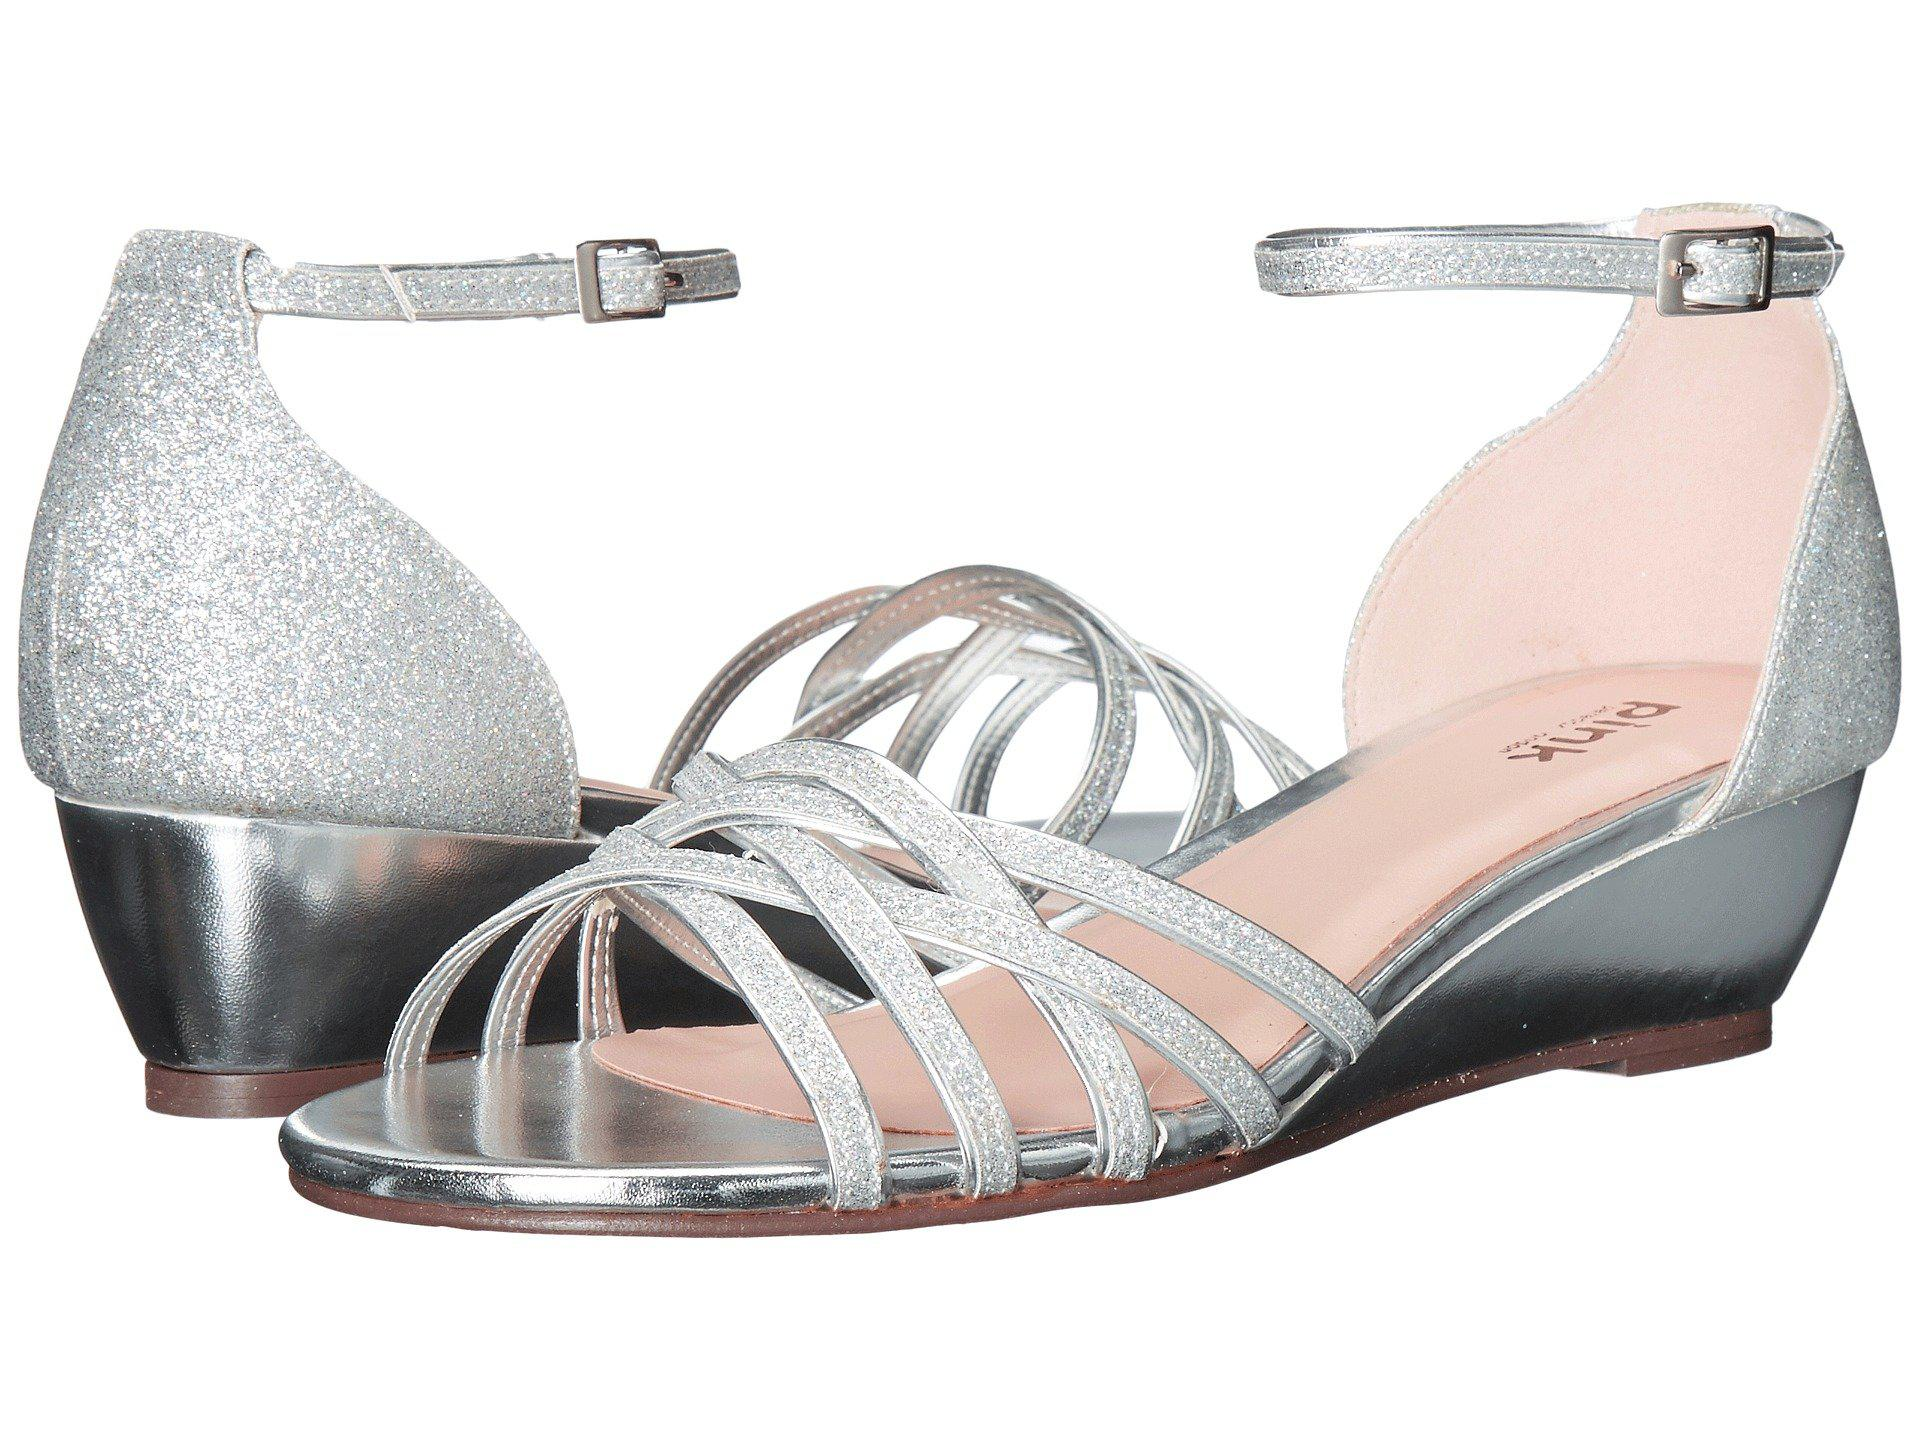 Avery Paradox London Pink 8sZXn